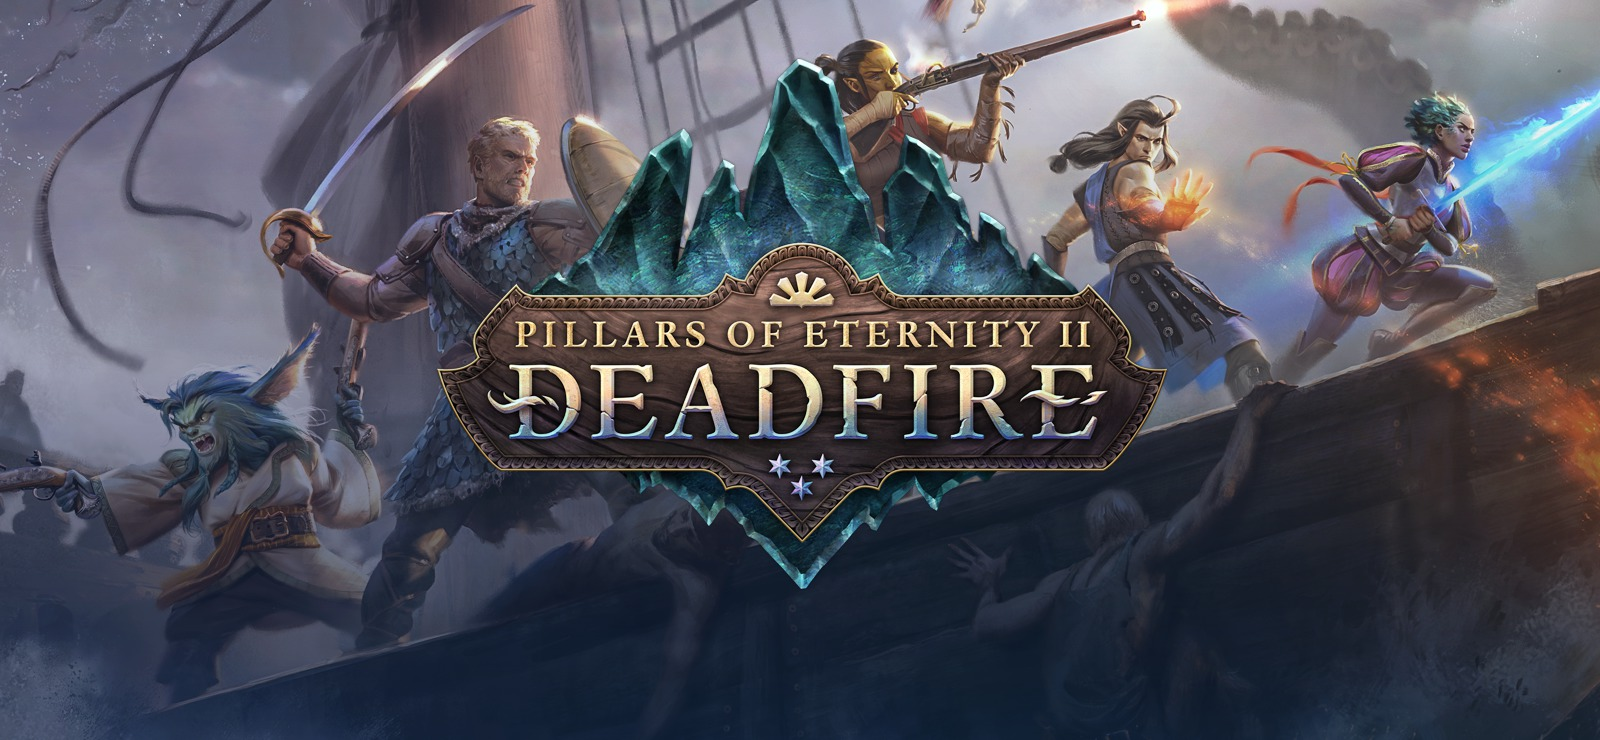 Pillars of Eternity II: Deadfire PC Game Full Version Free Download